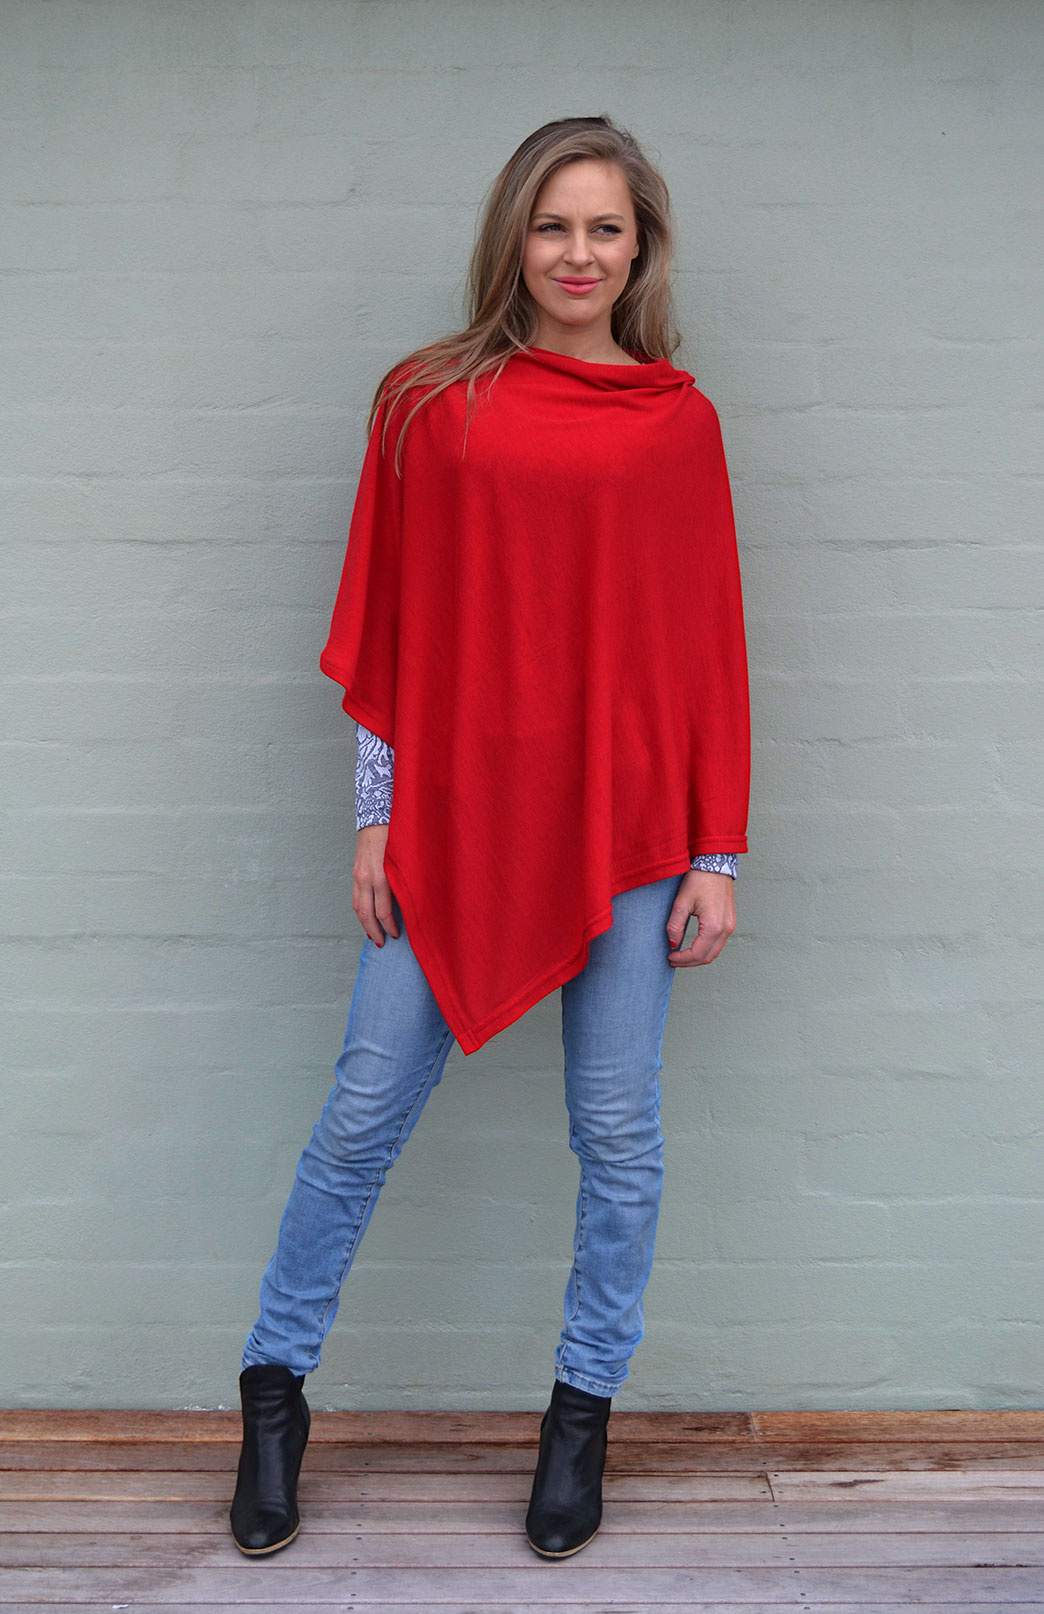 Our model wearing Classic Poncho in Flame Red